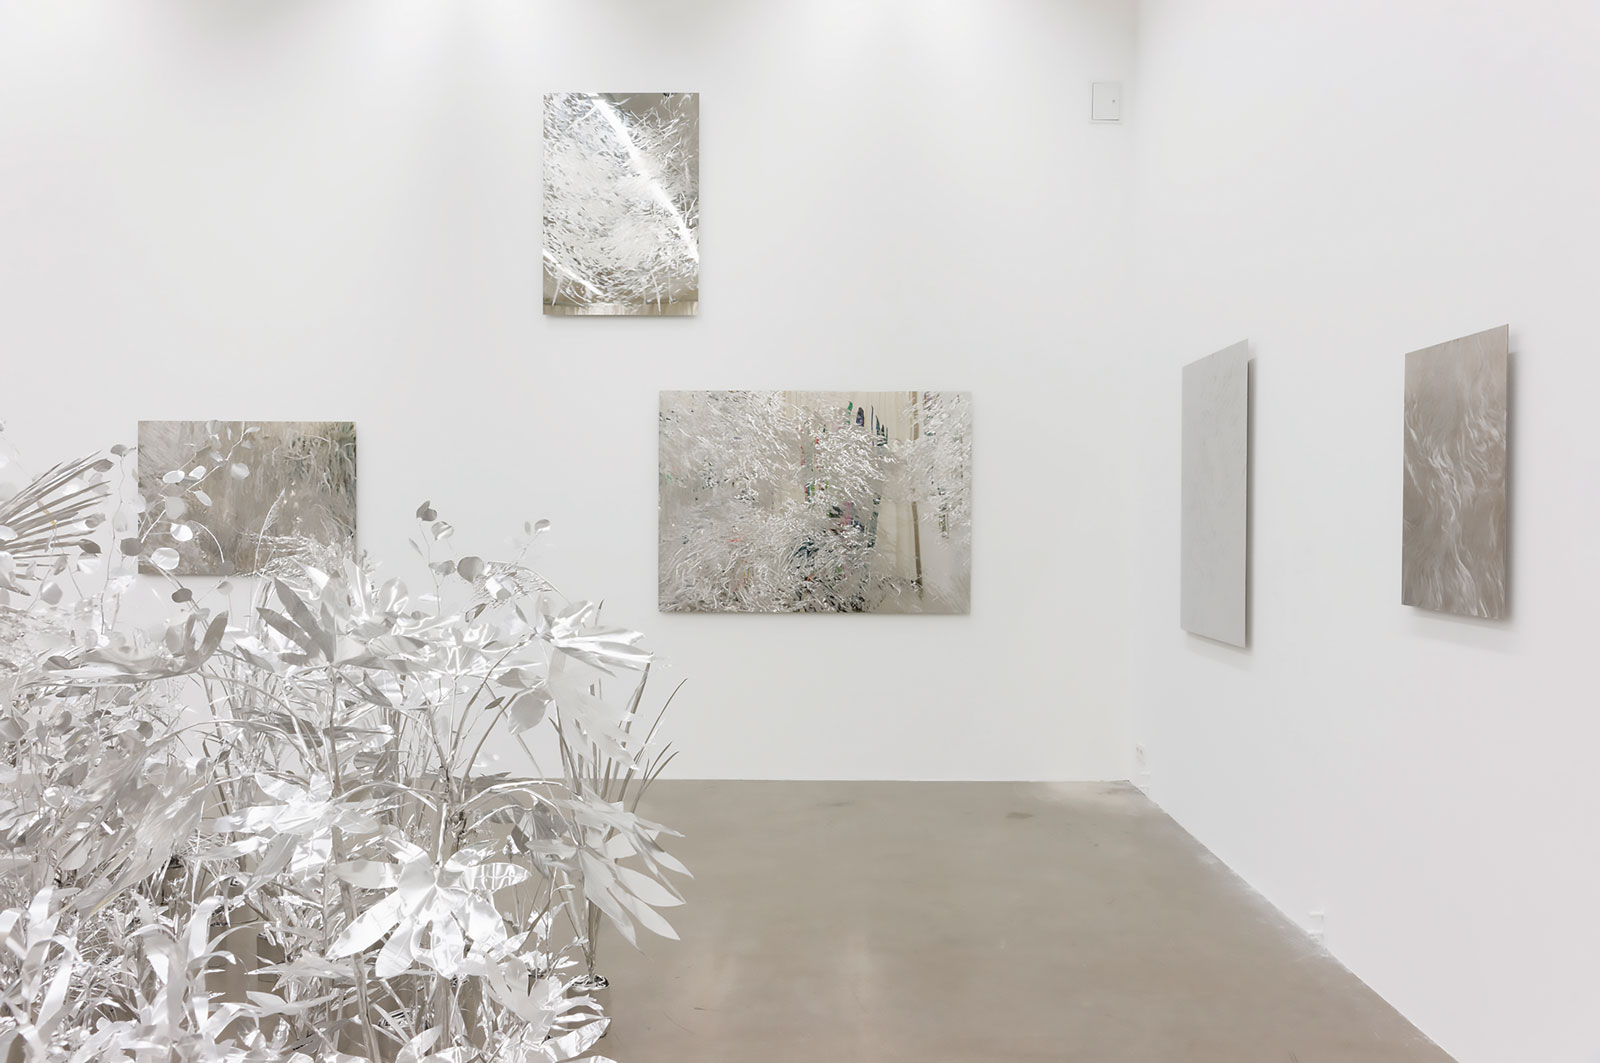 <i>Aluminum Garden </i>(2015–16). Image dimensions variable.  Courtesy of the Japanisches Kulturinstitut, Köln, Germany, and Sexauer Gallery, Berlin, Germany.